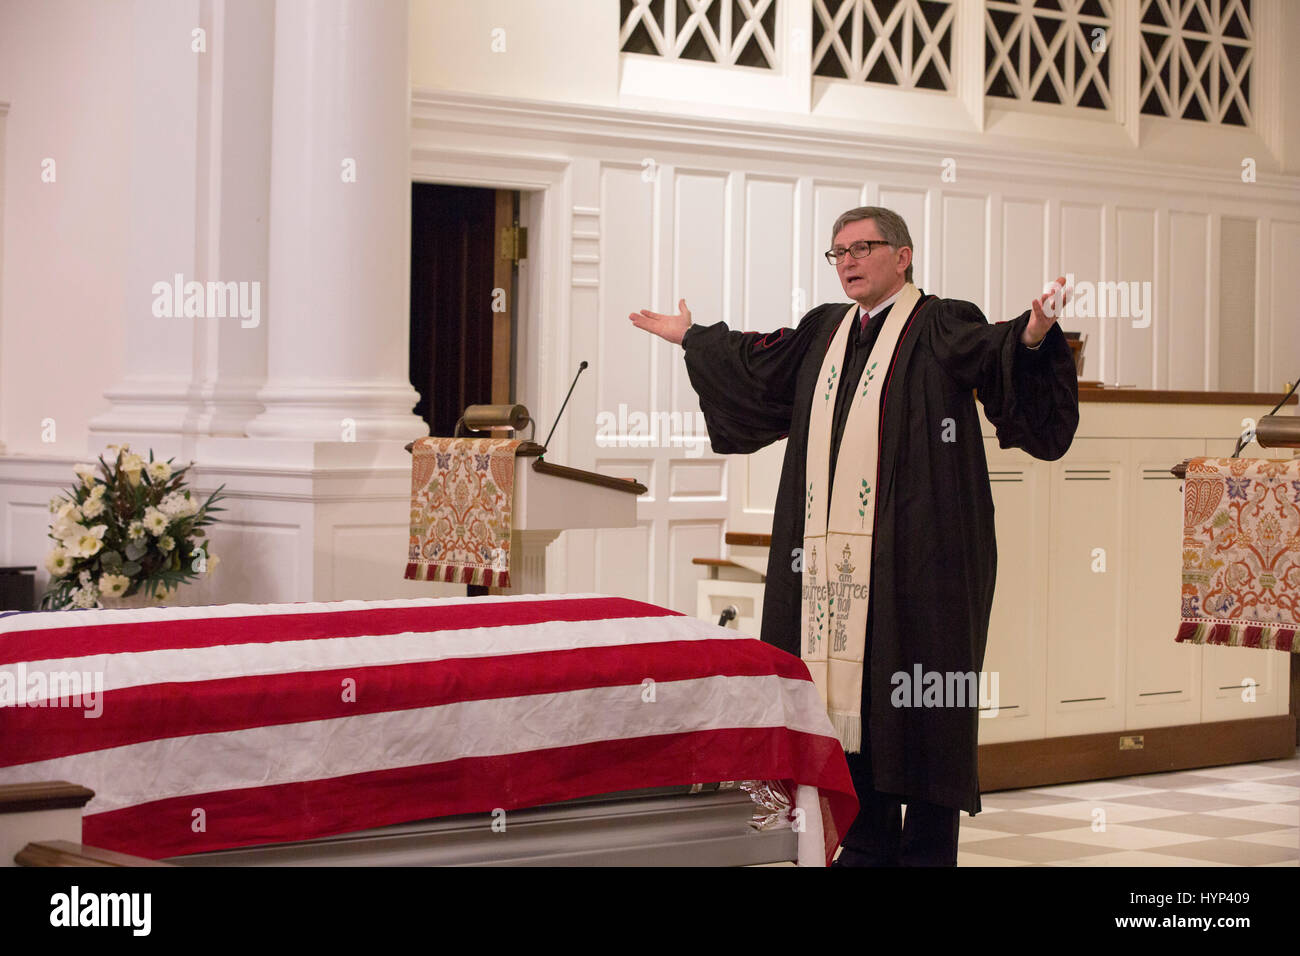 Arlington, Virginia, USA. 6th Apr, 2017. Rev. Dr. David A. Renwick delivers the bendiction during the funeral service - Stock Image